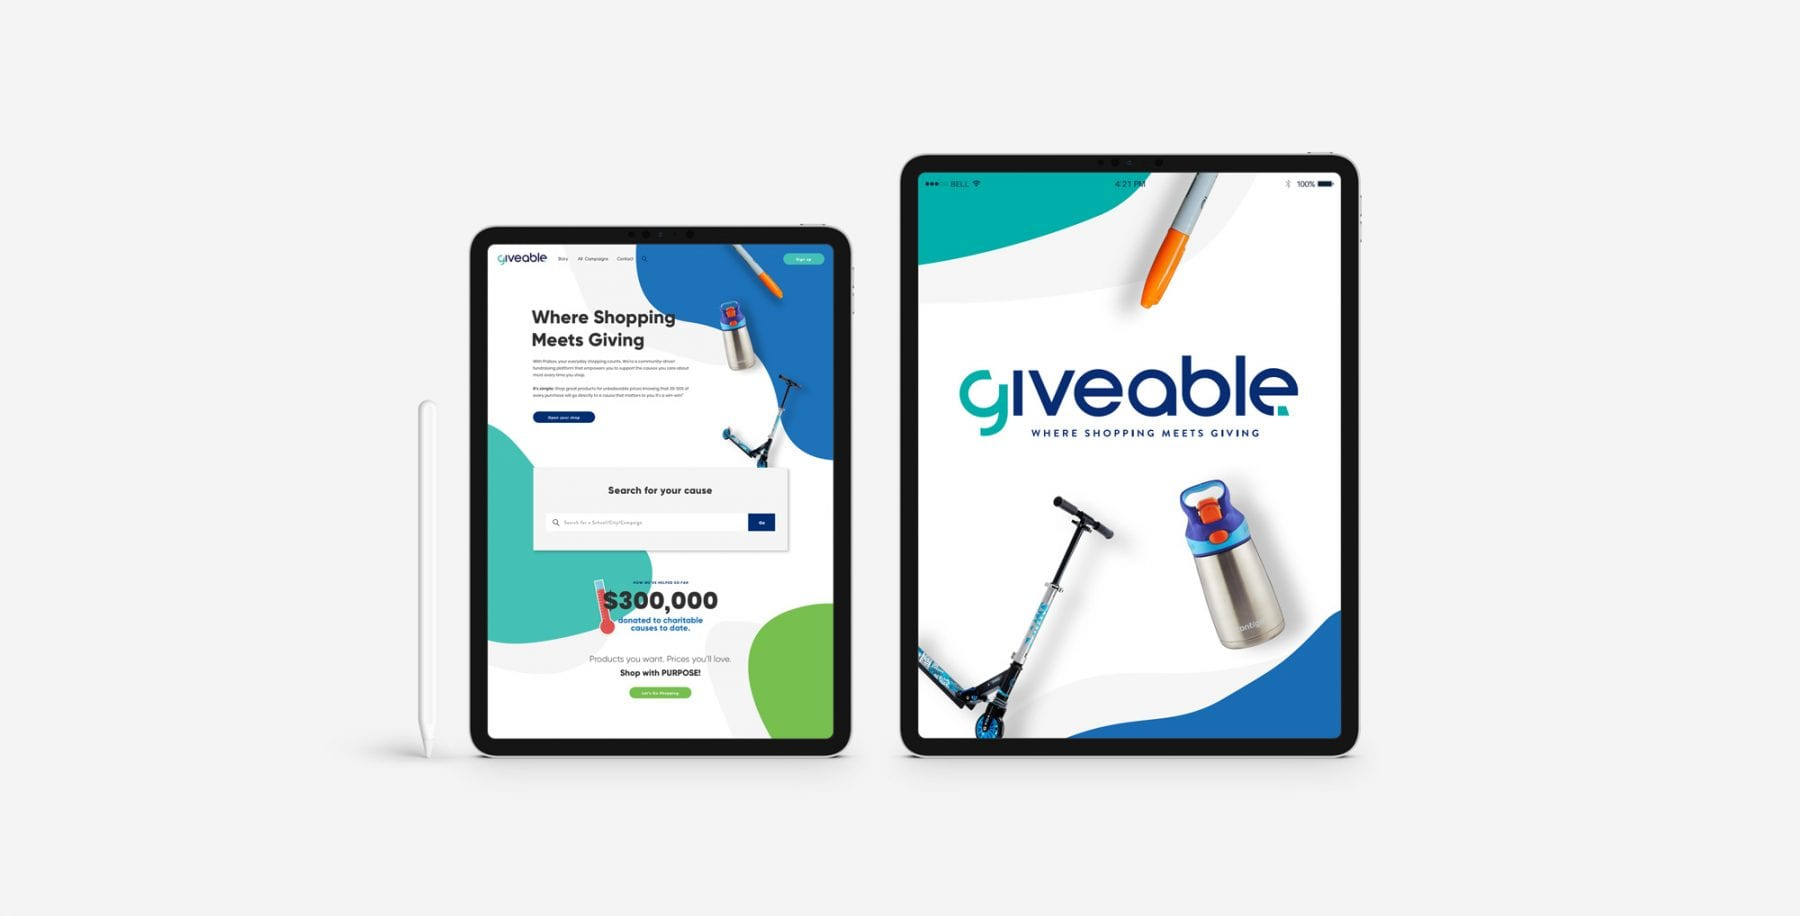 Giveable-ipad-mock-up